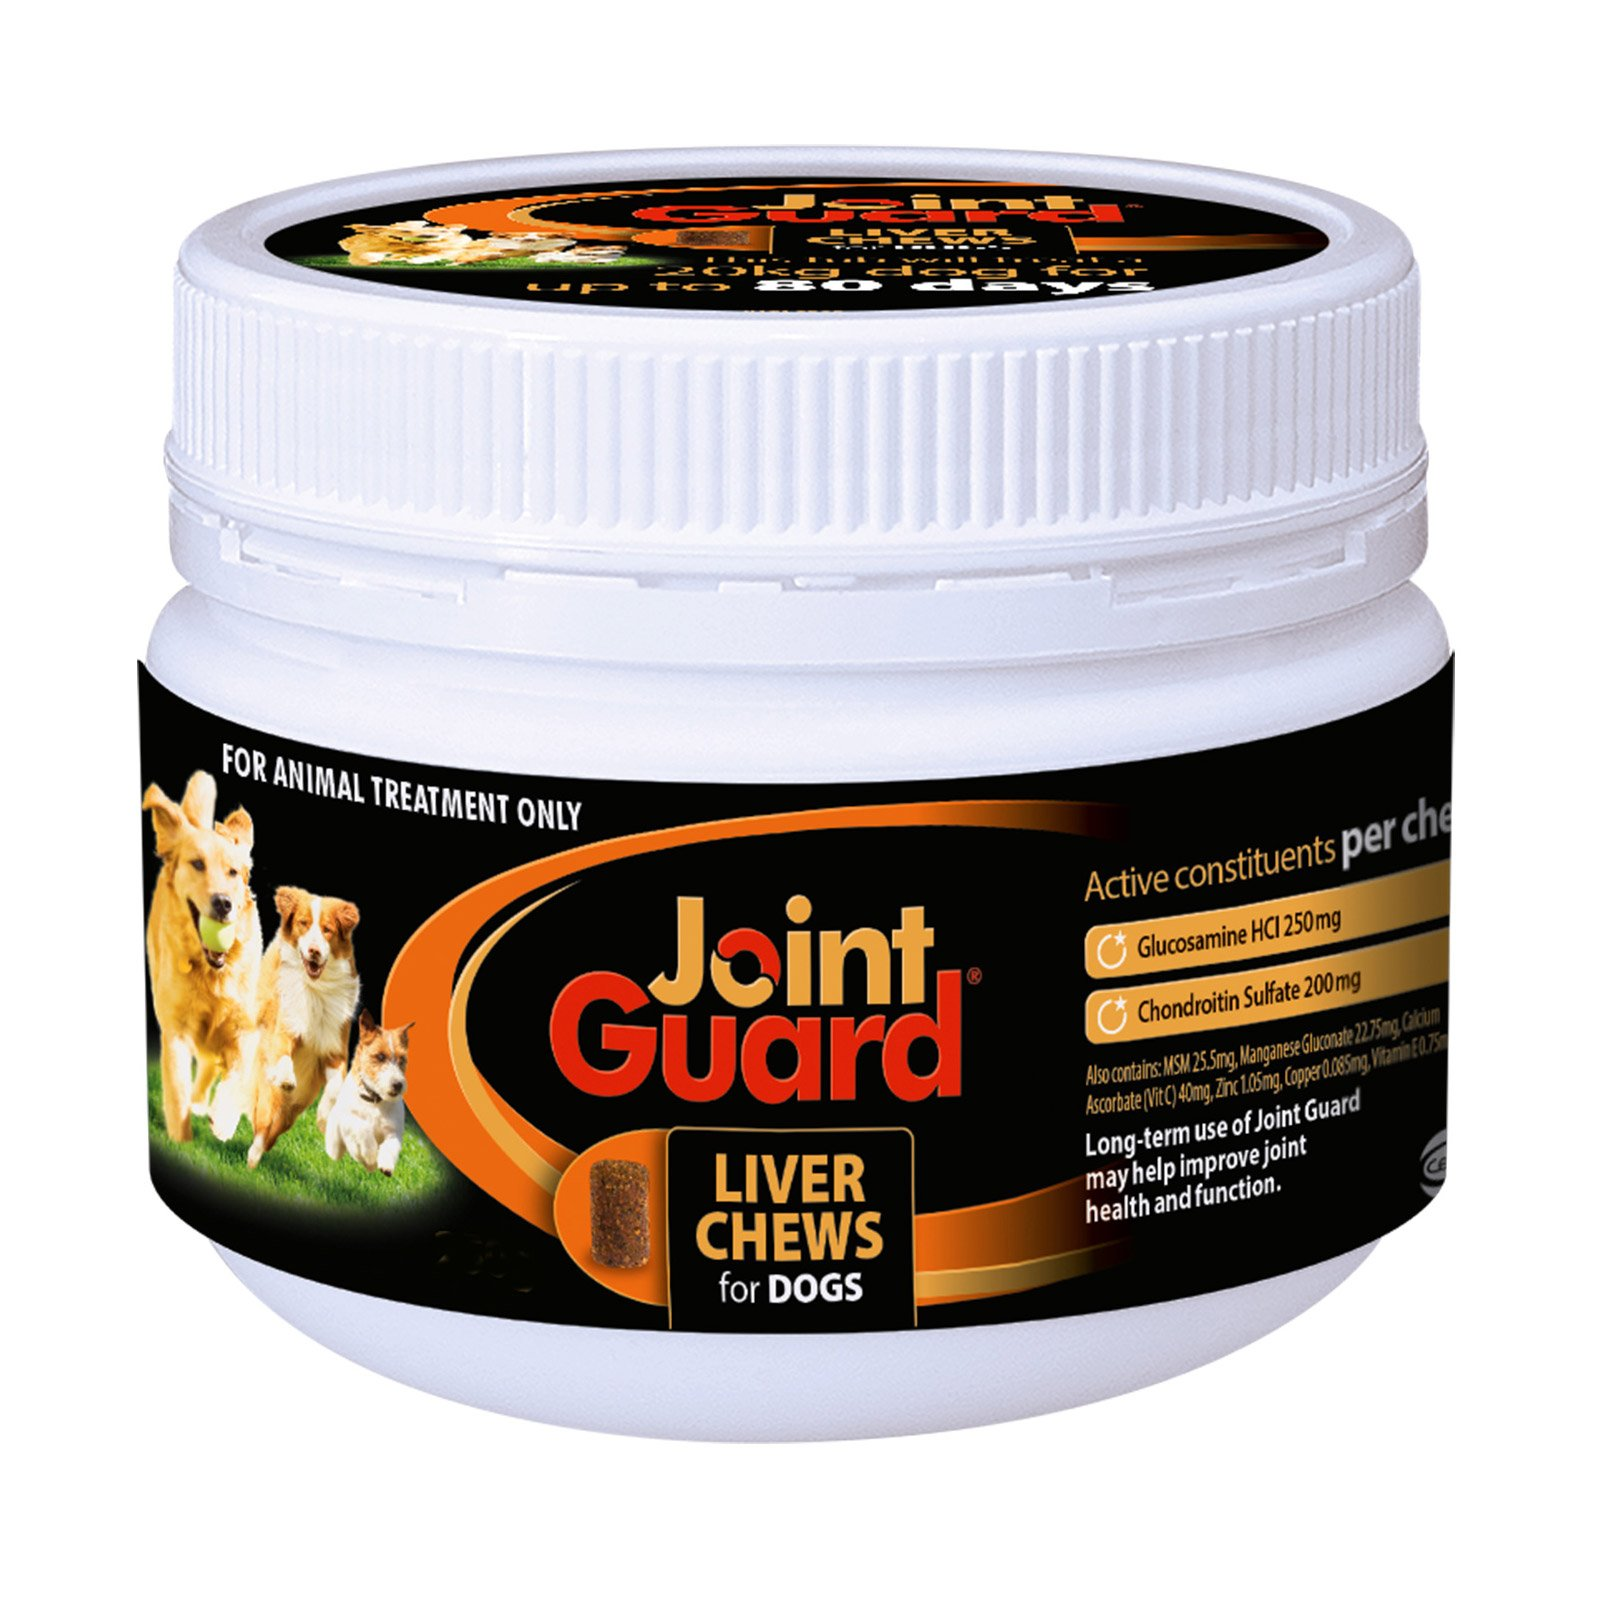 Joint Guard Liver Treat Chews For Canines 250 Gm 1 Pack Special Clearance Sale (Extra 20% Off)